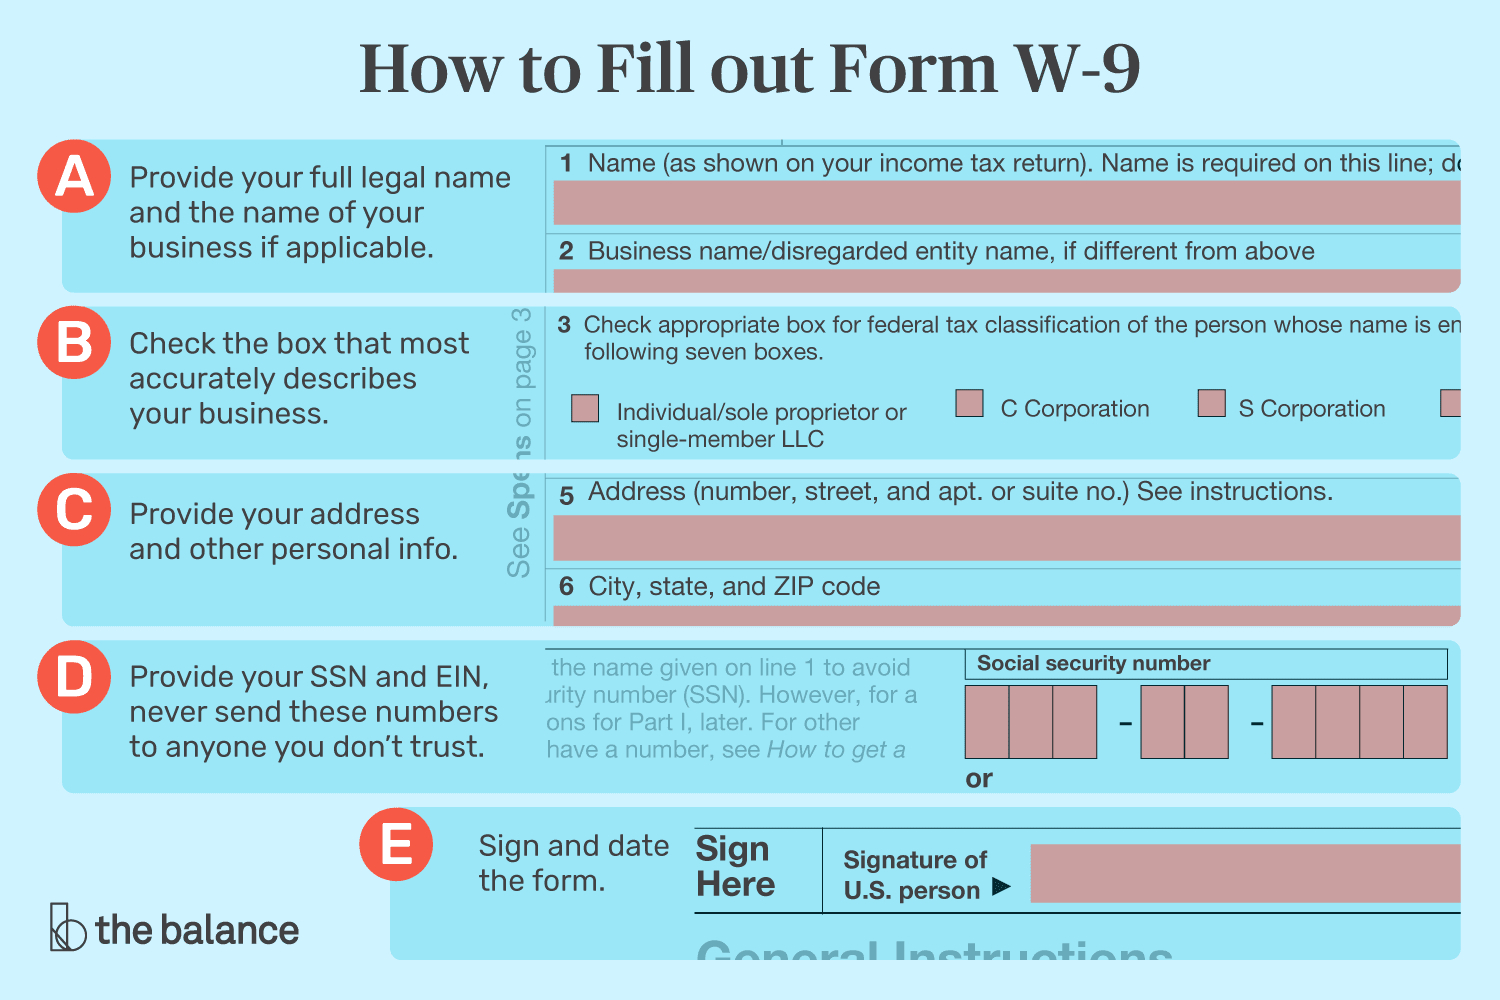 Irs Form W-9: What Is It?